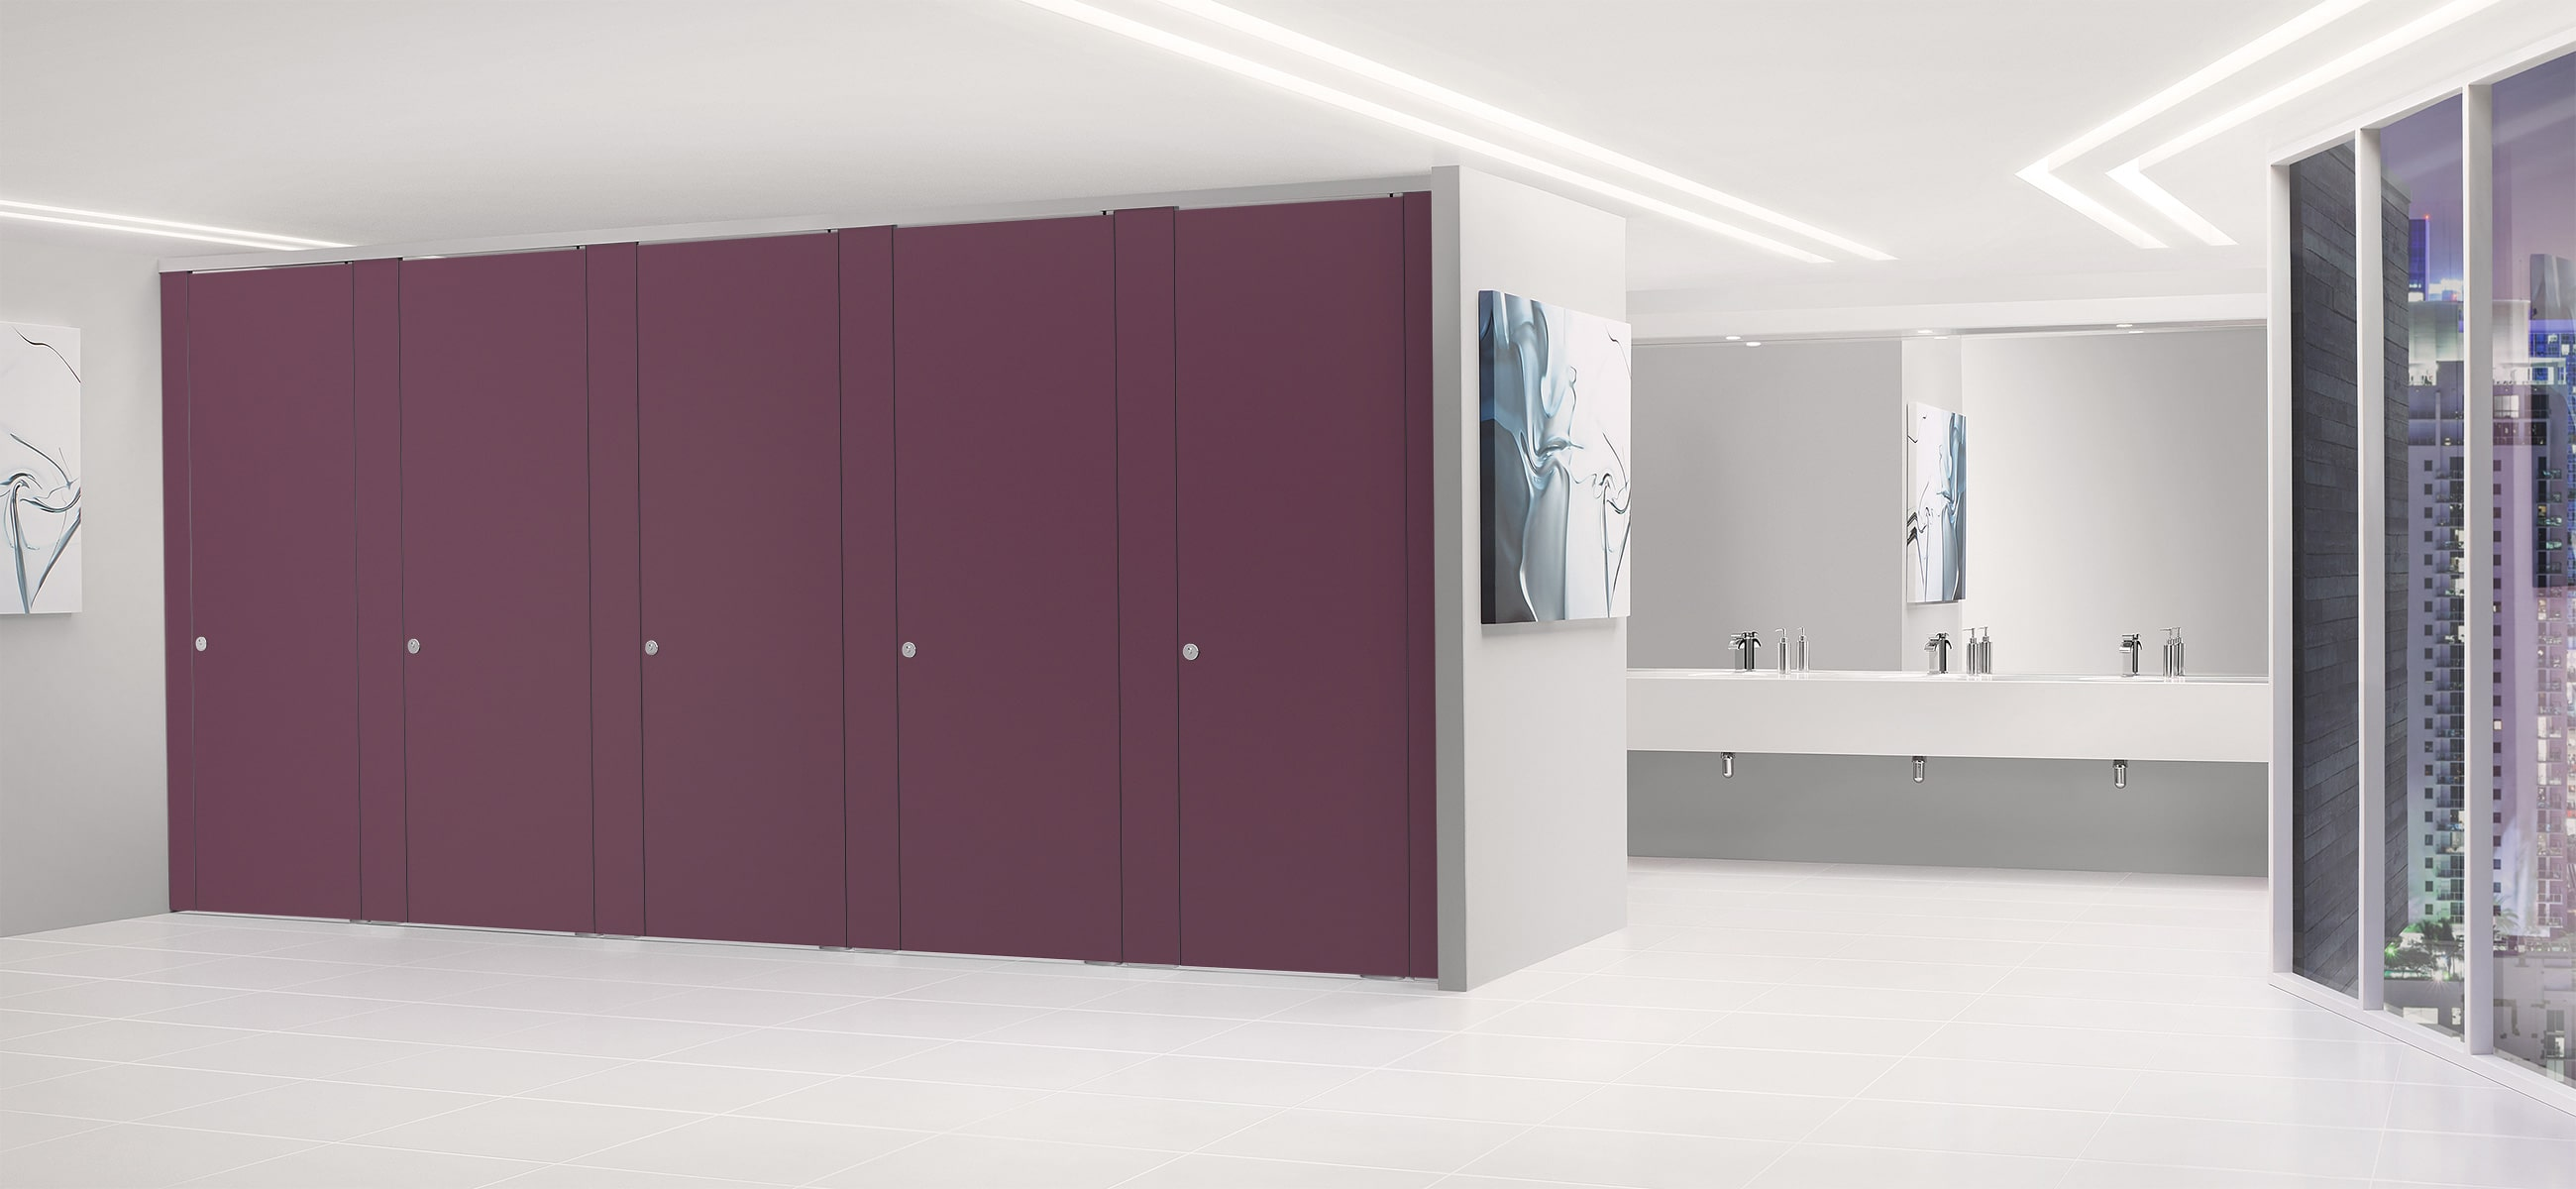 Sylan High Pressure Laminate Washroom Cubicles in Pansy